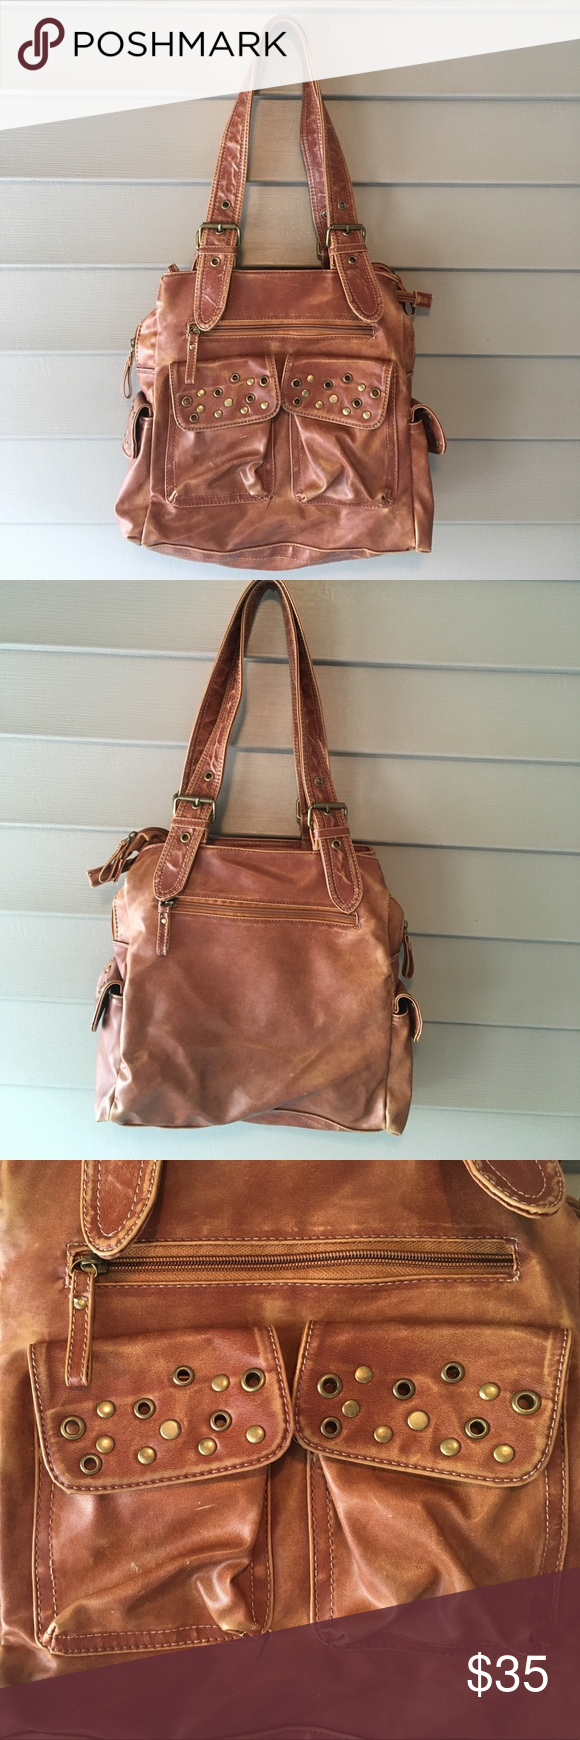 Faux Leather gold grommet double strap handbag Beautiful neutral brown Faux leather bag with gold grommet details. Plenty of pockets., several the perfect size for you phone. Double zip for inside with so much room. Handbag looks really chic!! Bags Shoulder Bags